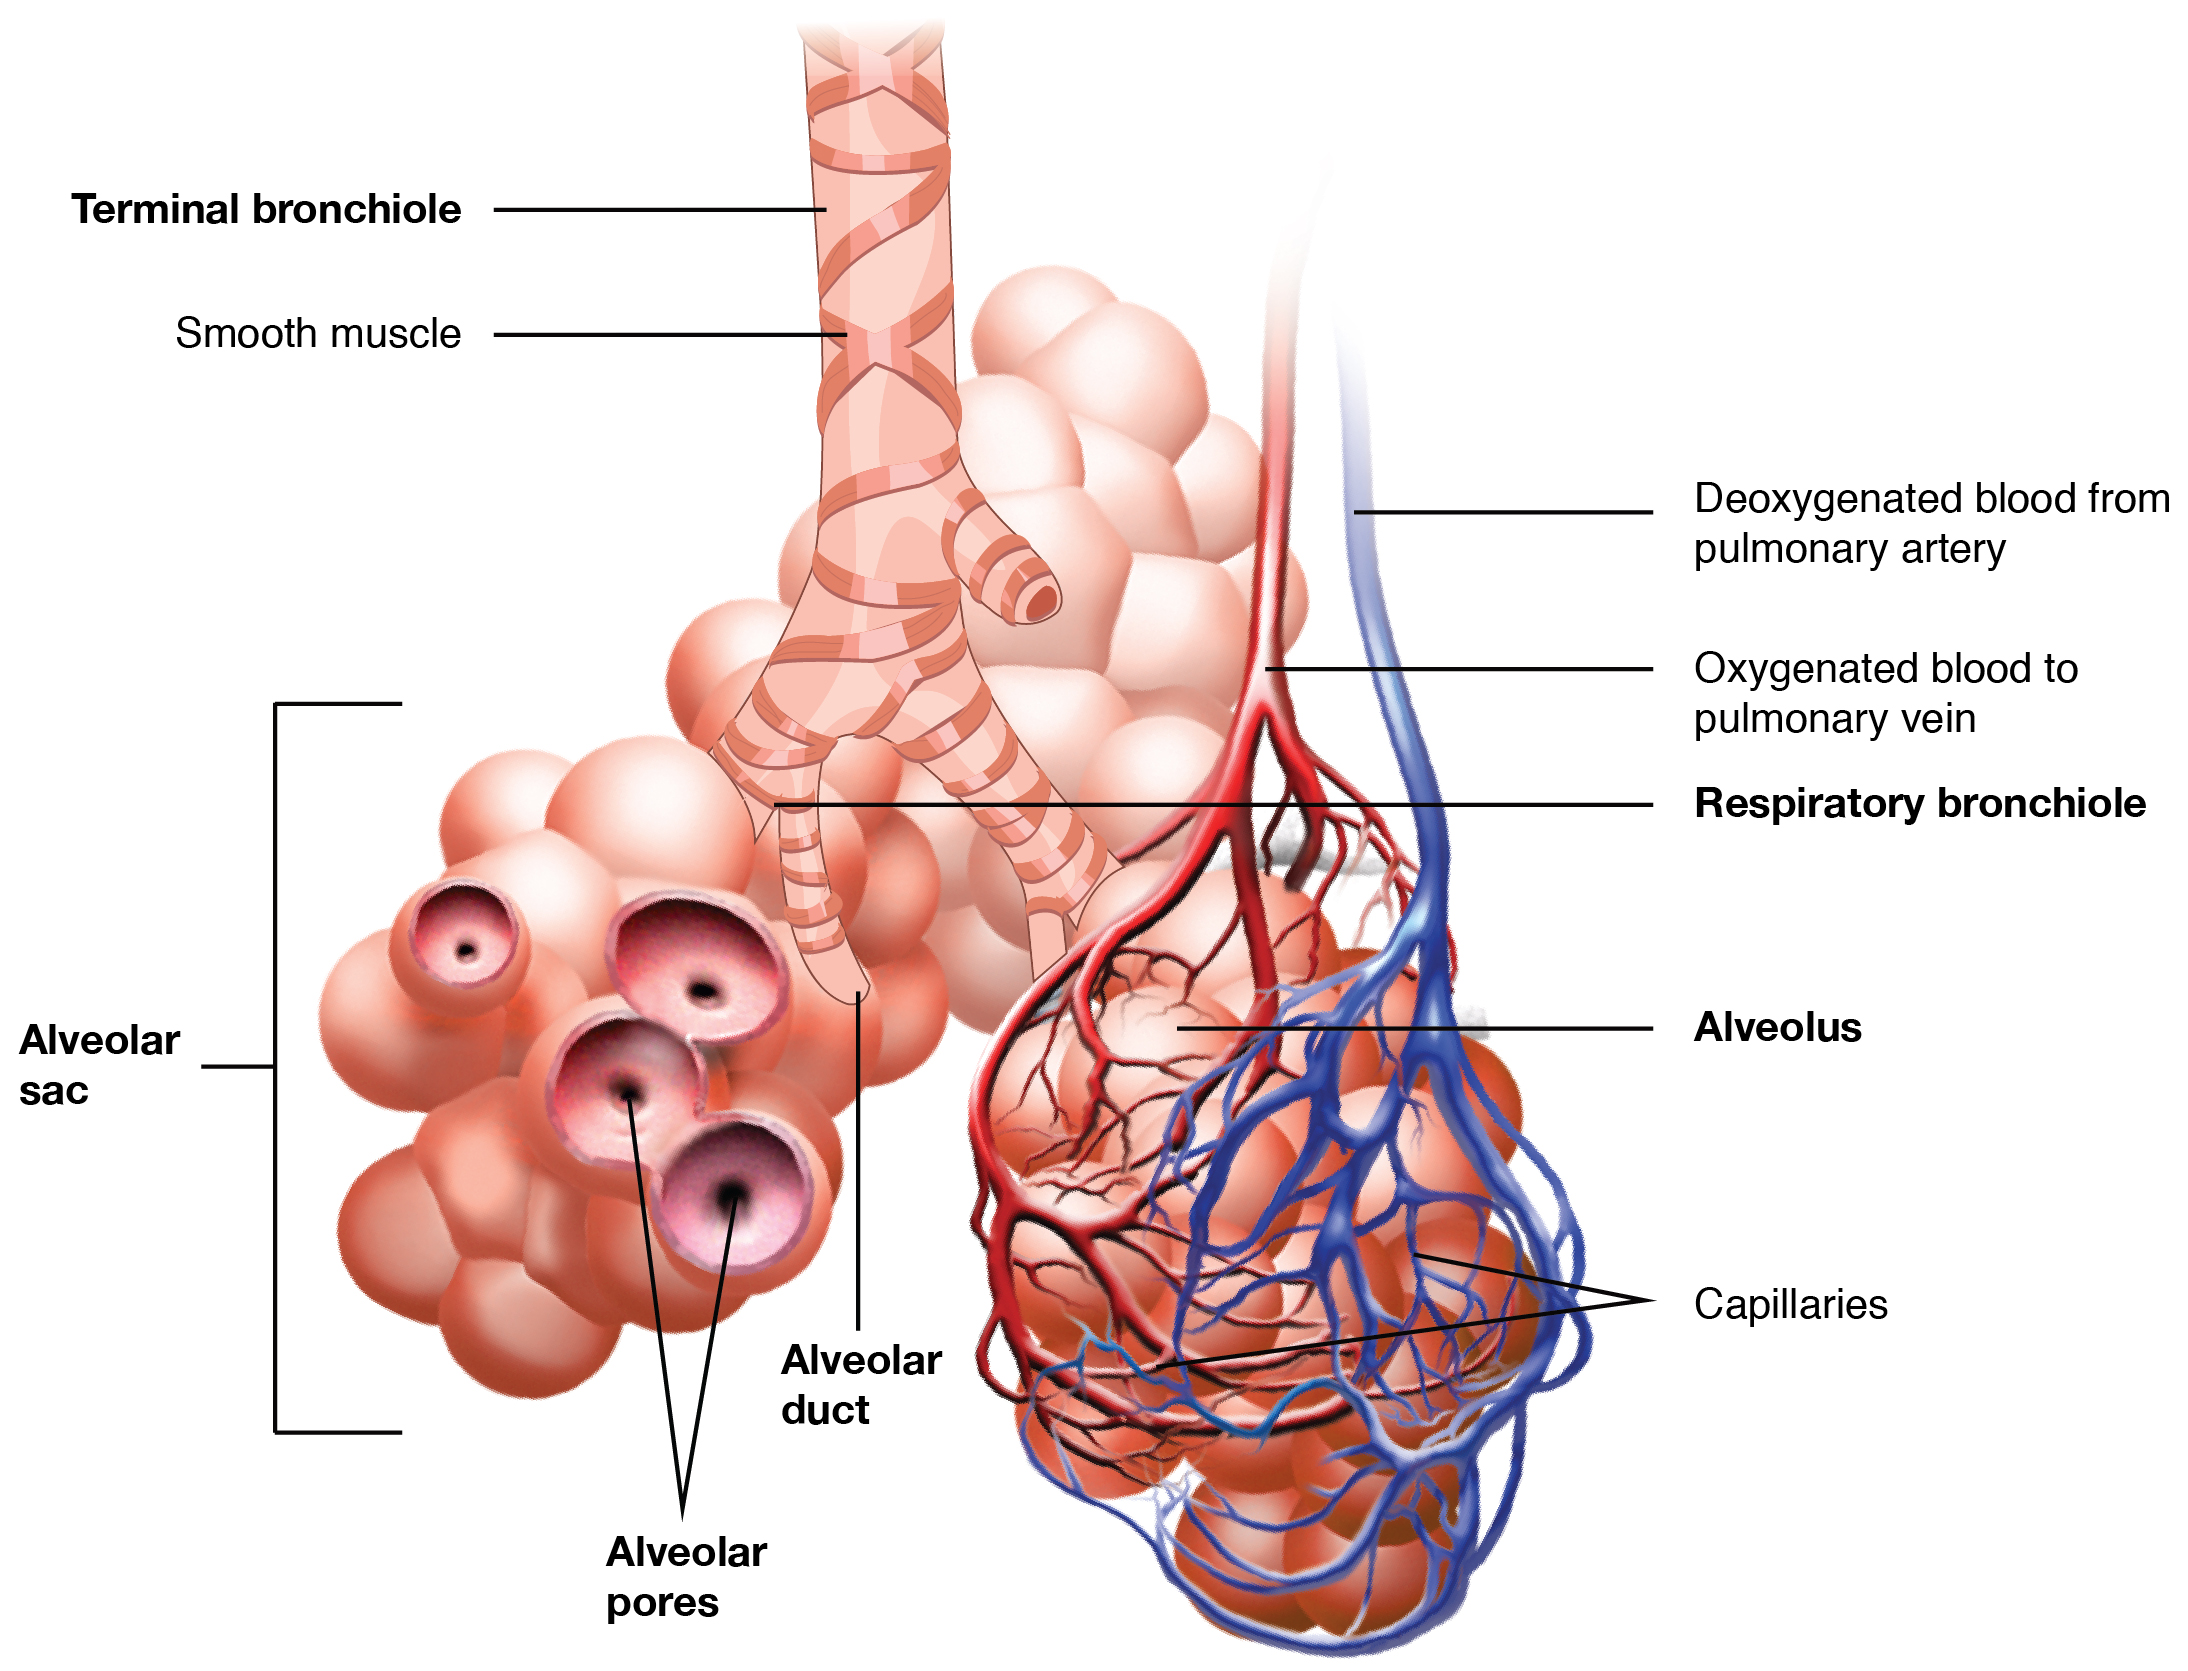 This image shows the bronchioles and alveolar sacs in the lungs and depicts the exchange of oxygenated and deoxygenated blood in the pulmonary blood vessels.